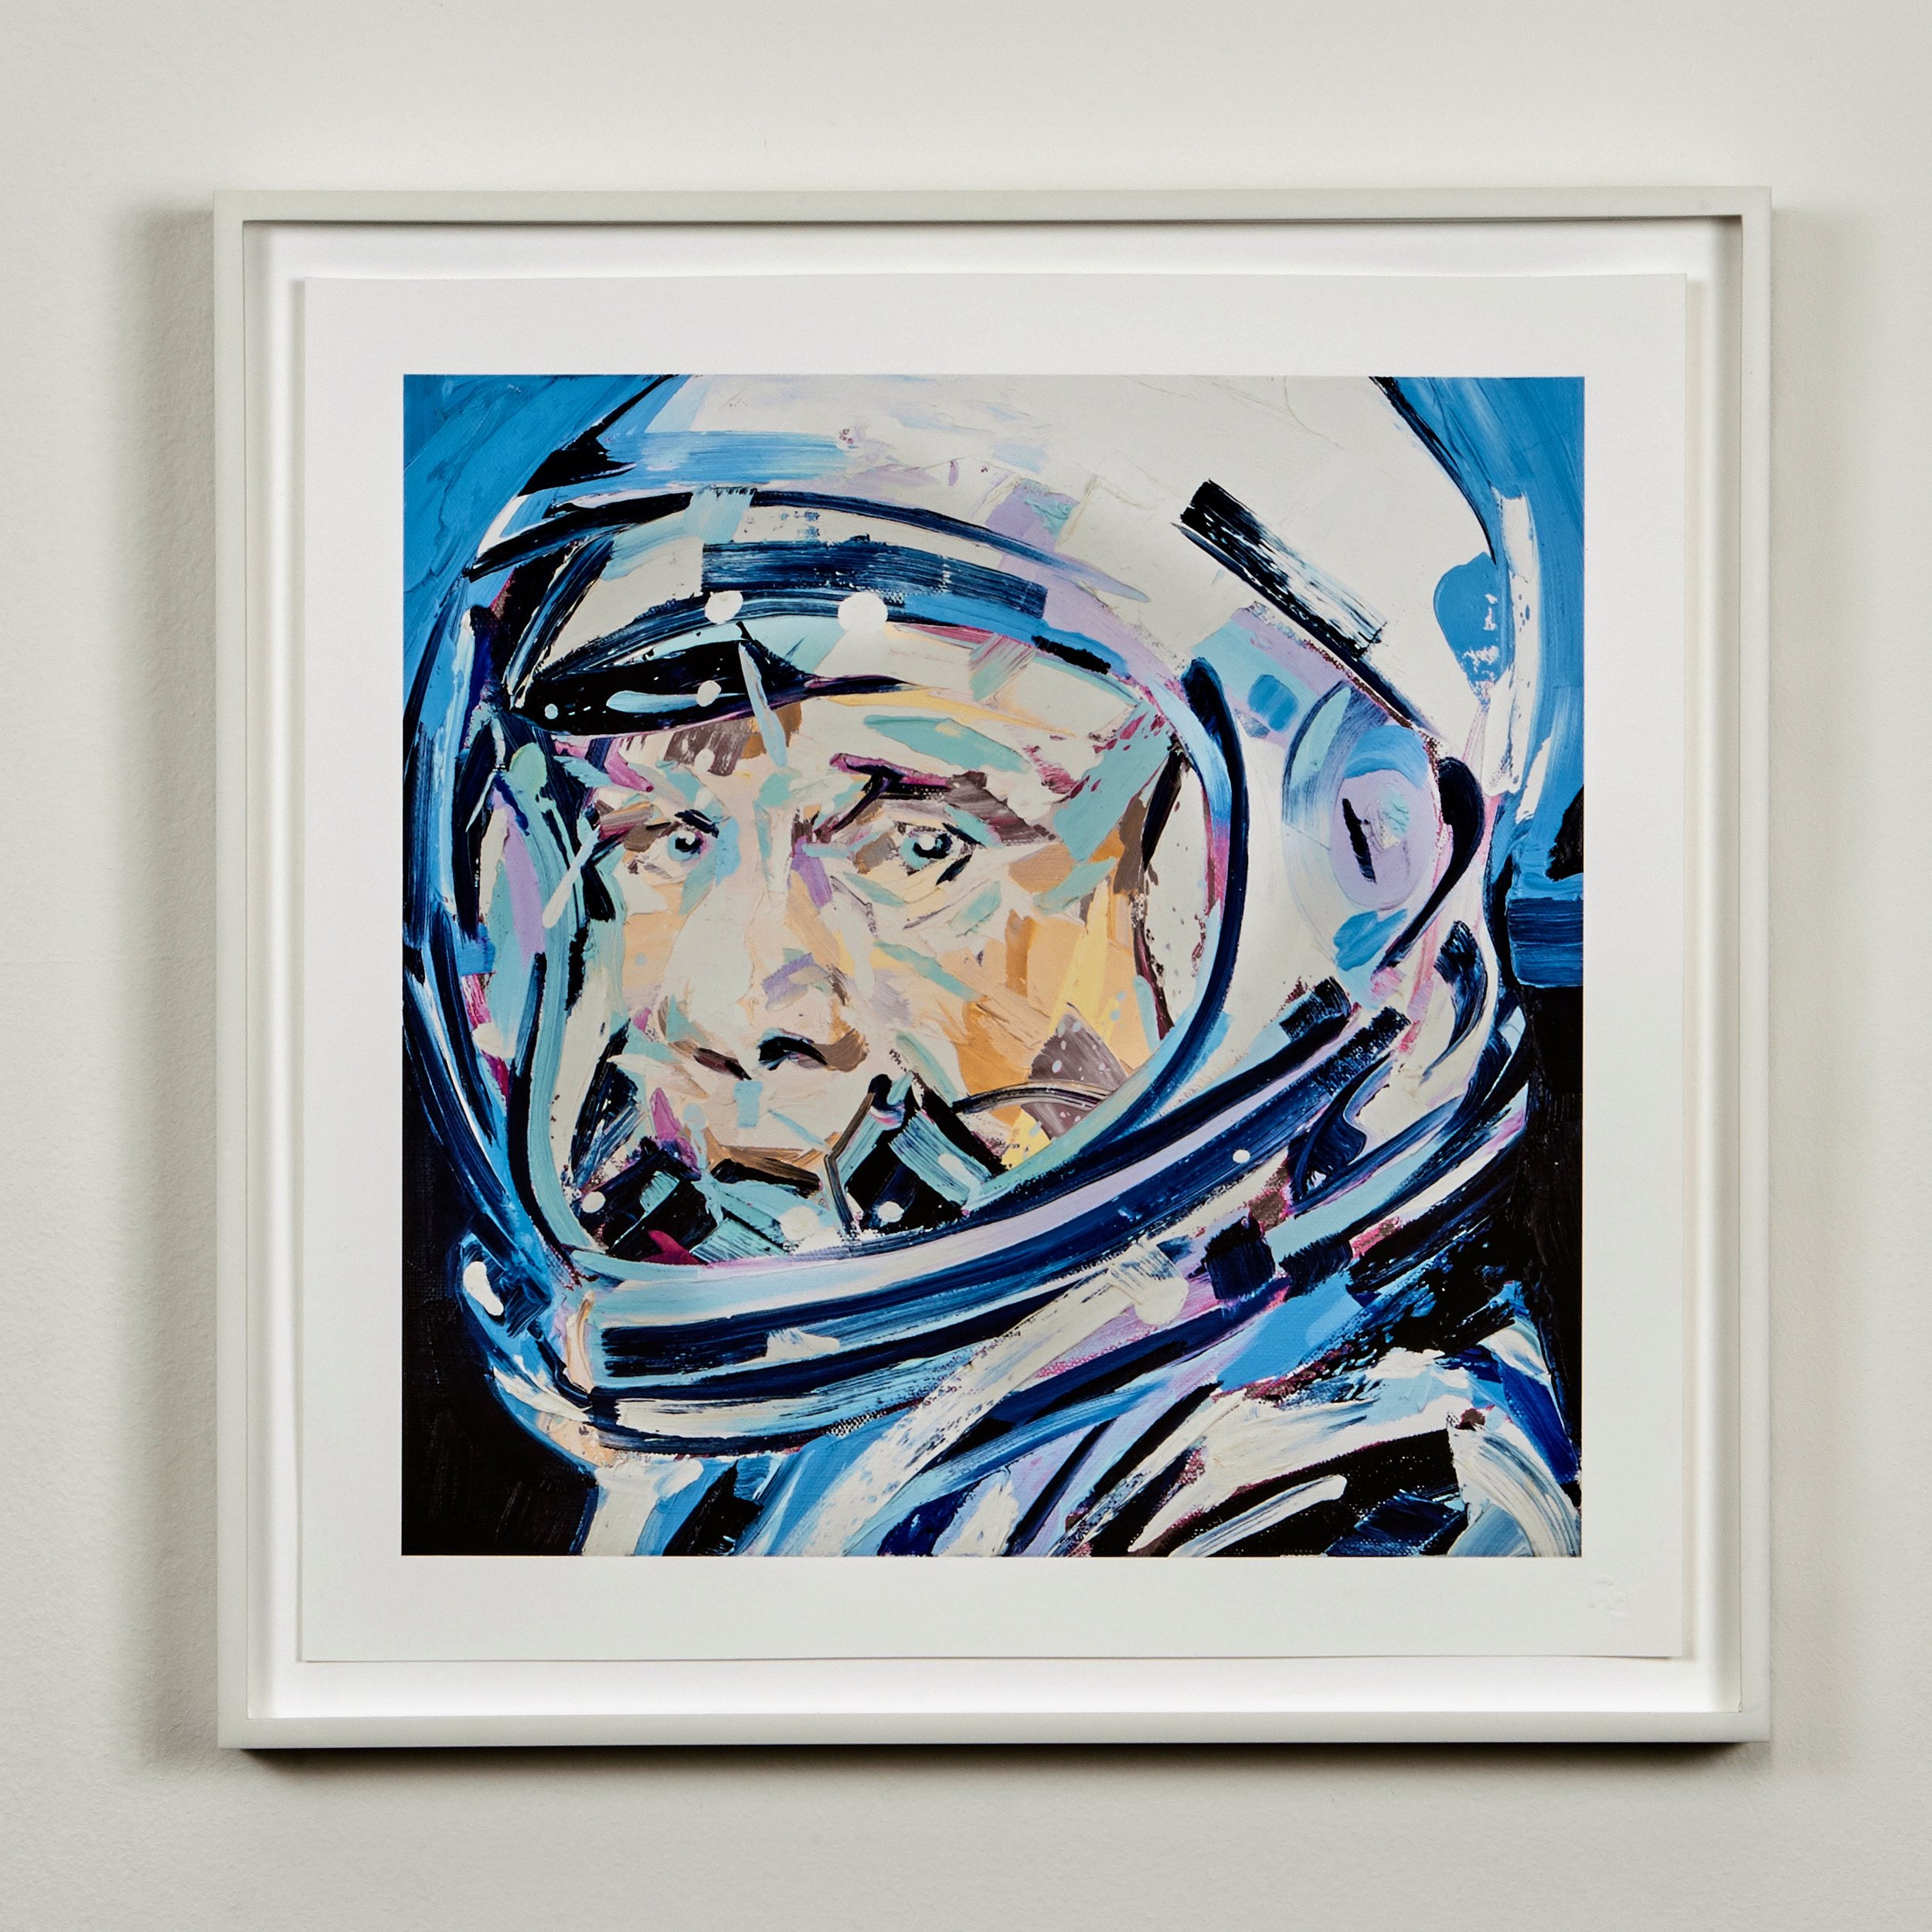 Michael Kagan print in welded aluminum, white powdercoat frame